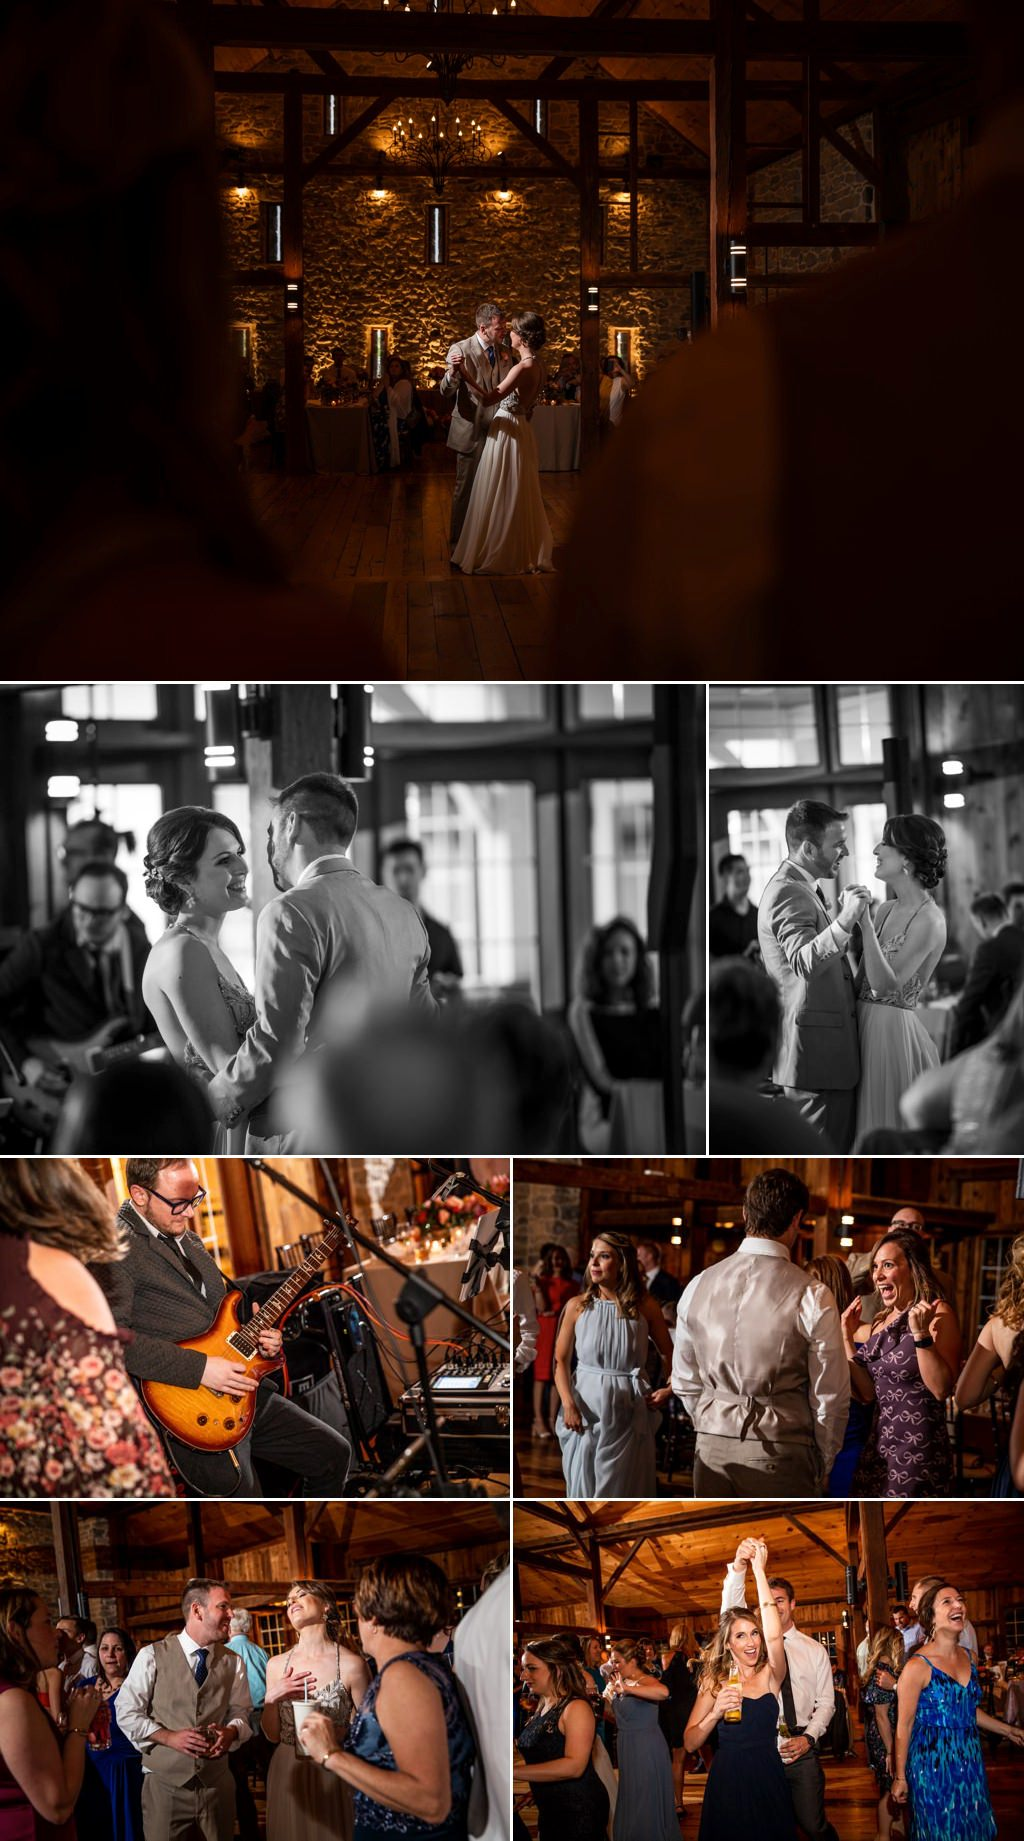 Dancing photos from a wedding reception at The Barn at Silverstone